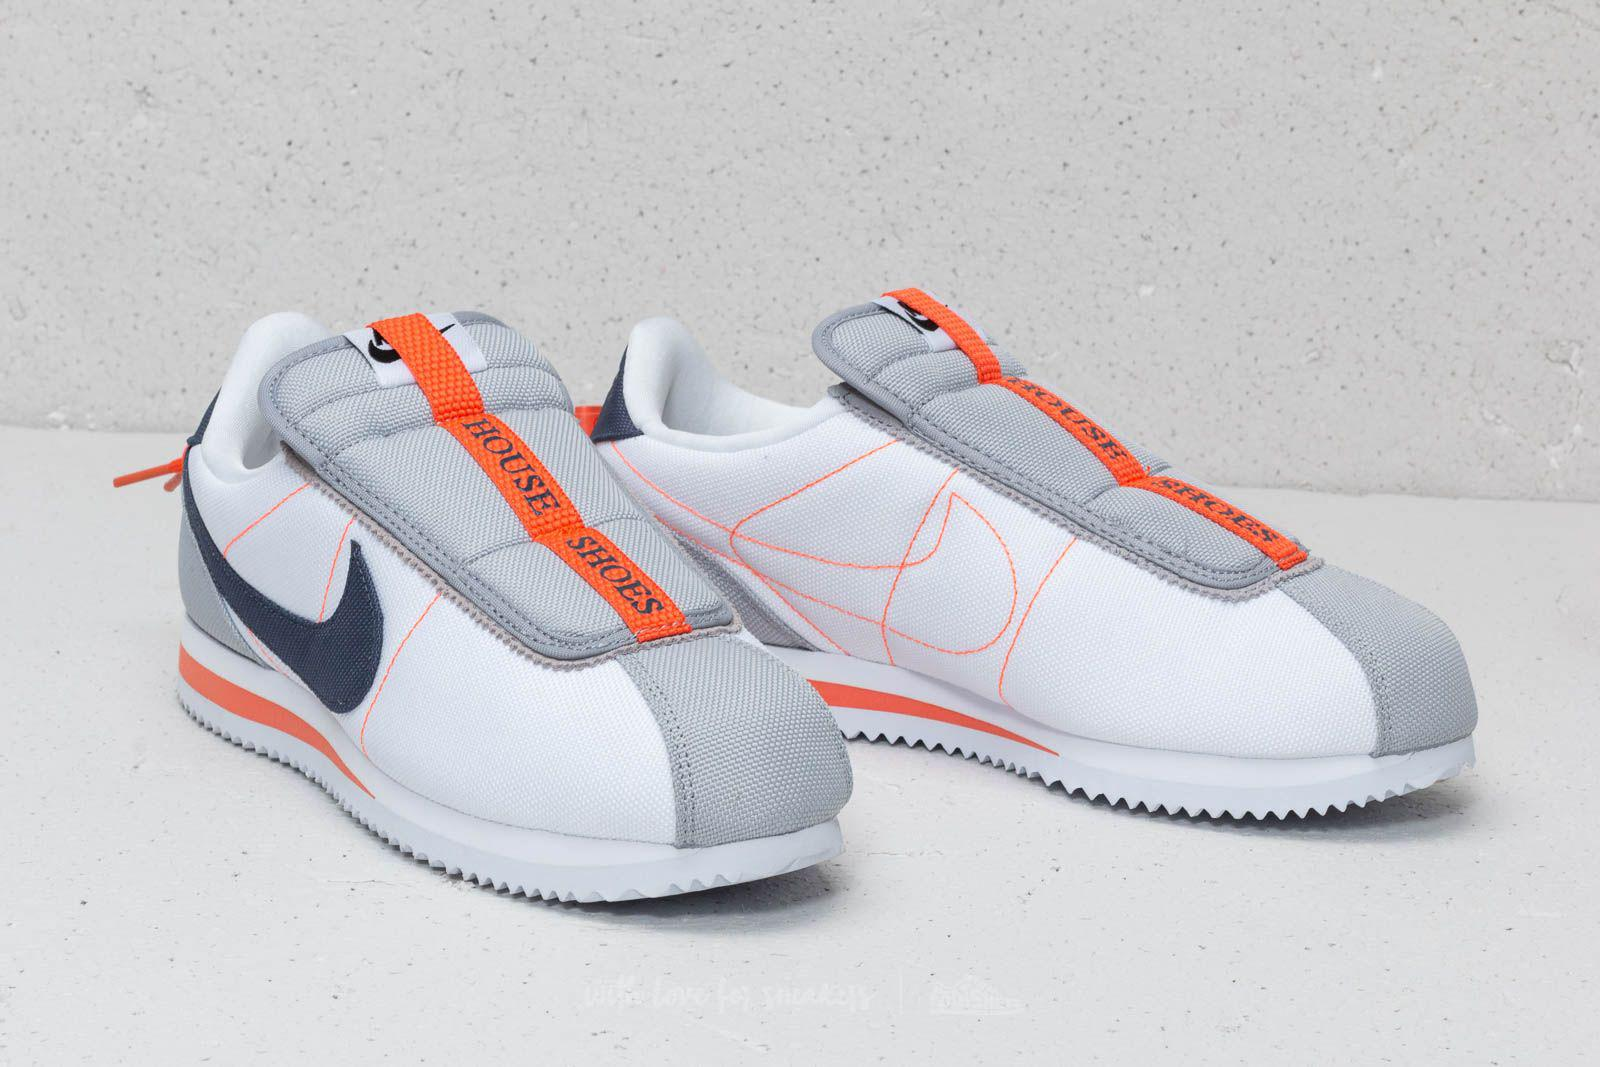 new arrival 182ae 8937d Nike Multicolor Cortez X Kendrick Lamar Kenny Iv